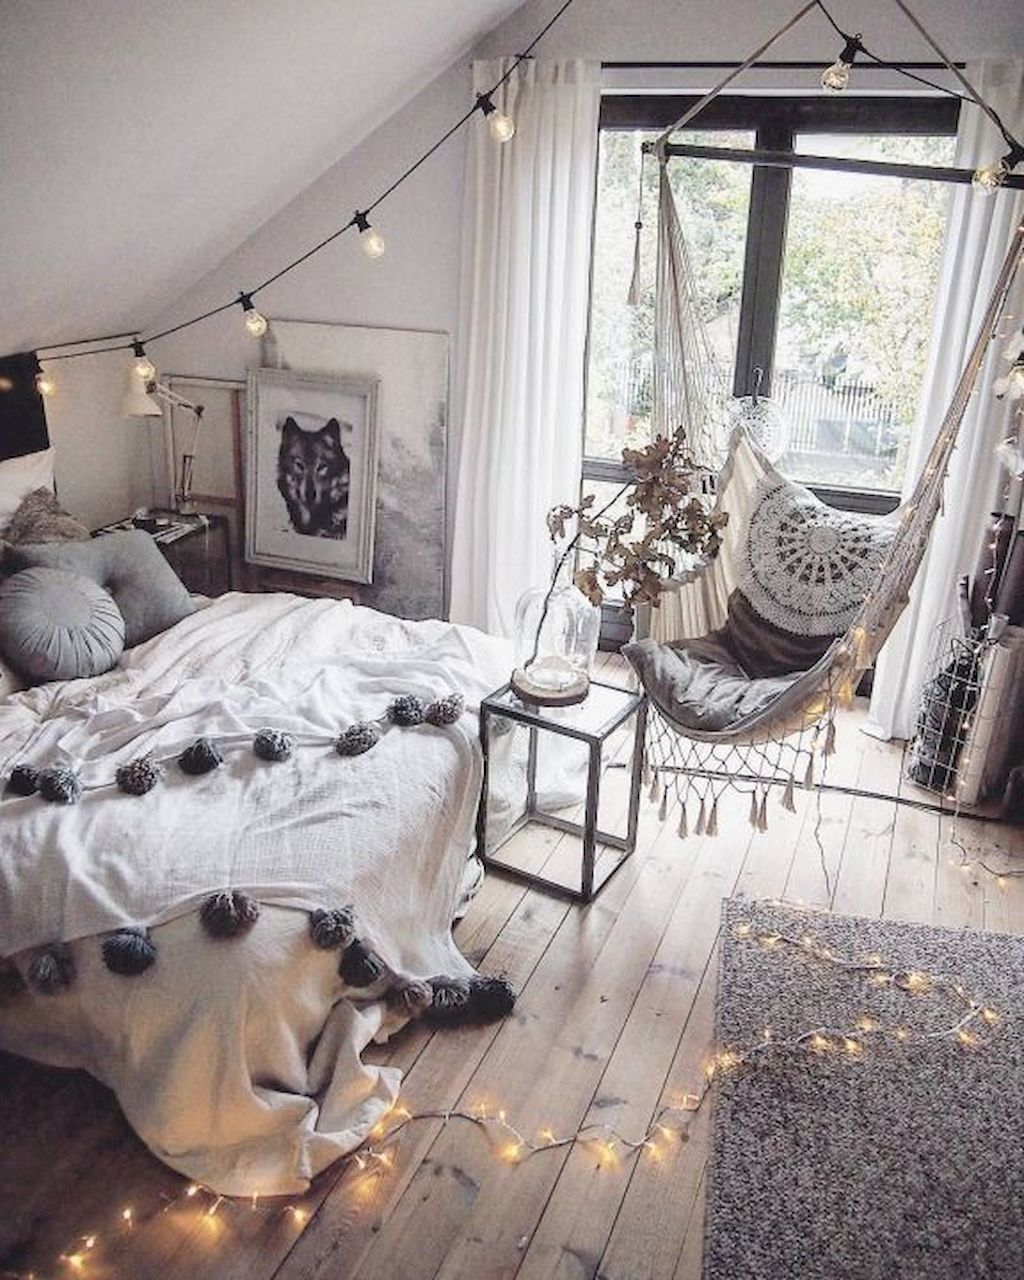 60+ Gallery of Bedrooms Cheap Makeover You Really Need is part of Hipster bedroom Curtains - The bedroom is not only a place to sleep for some people  They have more connection to this room as it could be the most personal area that they can become themselves completely  For some people who…